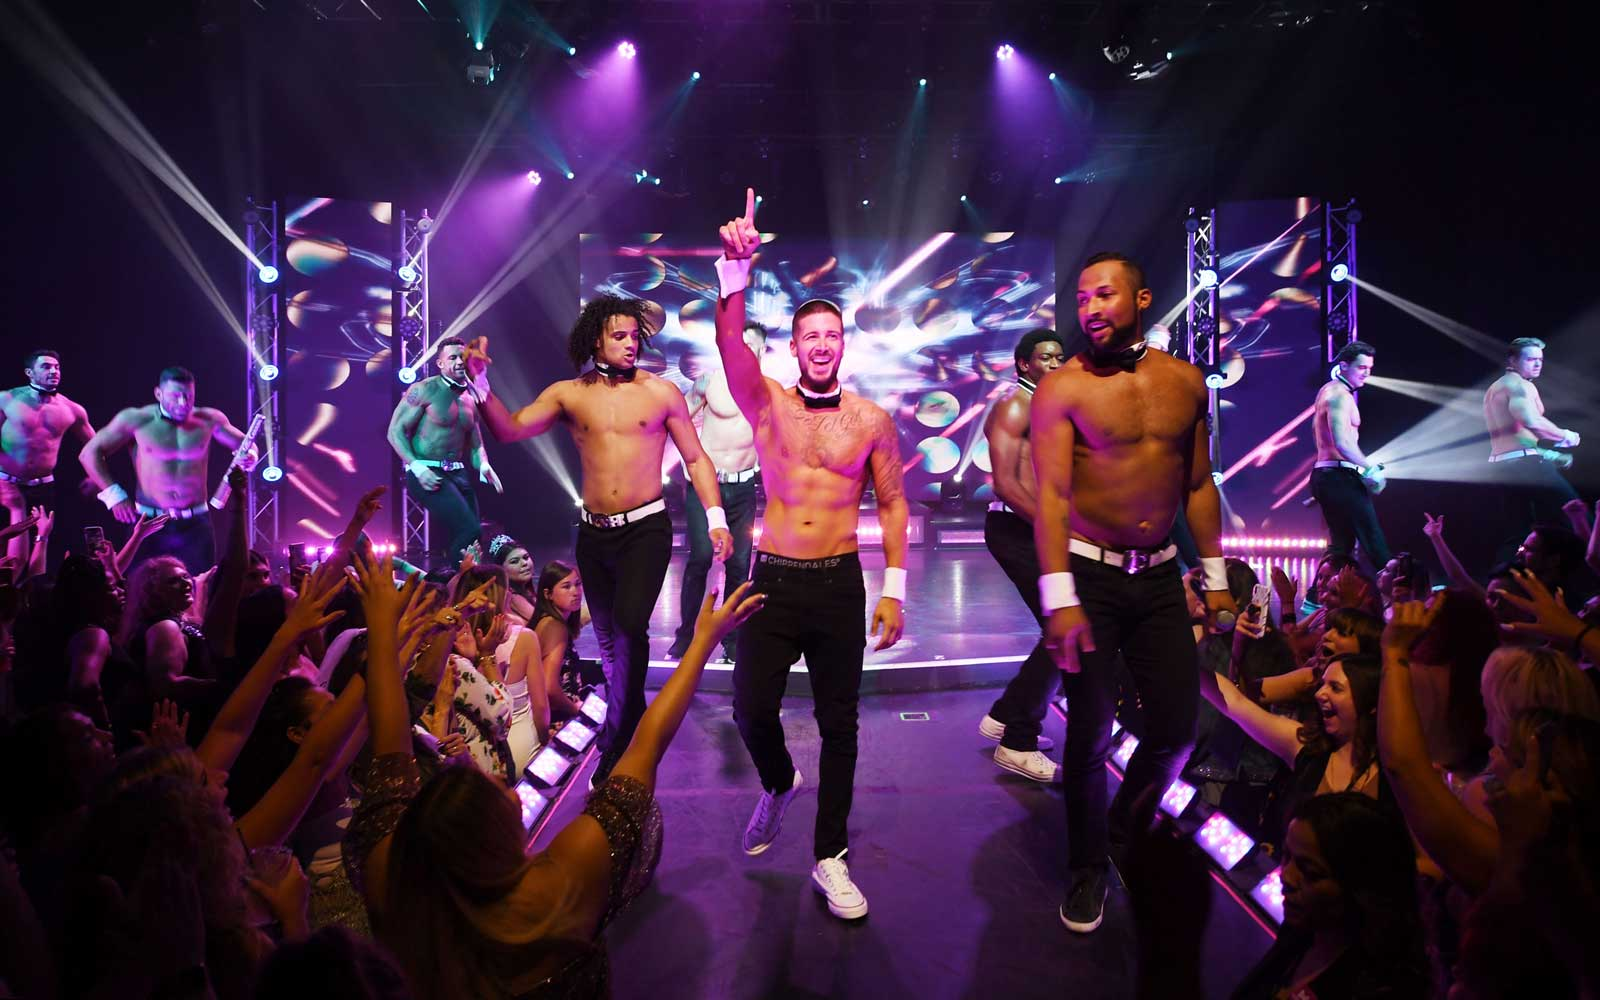 """""""Jersey Shore"""" Star Vinny Guadagnino Returns To Chippendales As Celebrity Guest Host By Popular Demand At Rio All-Suite Hotel & Casino"""